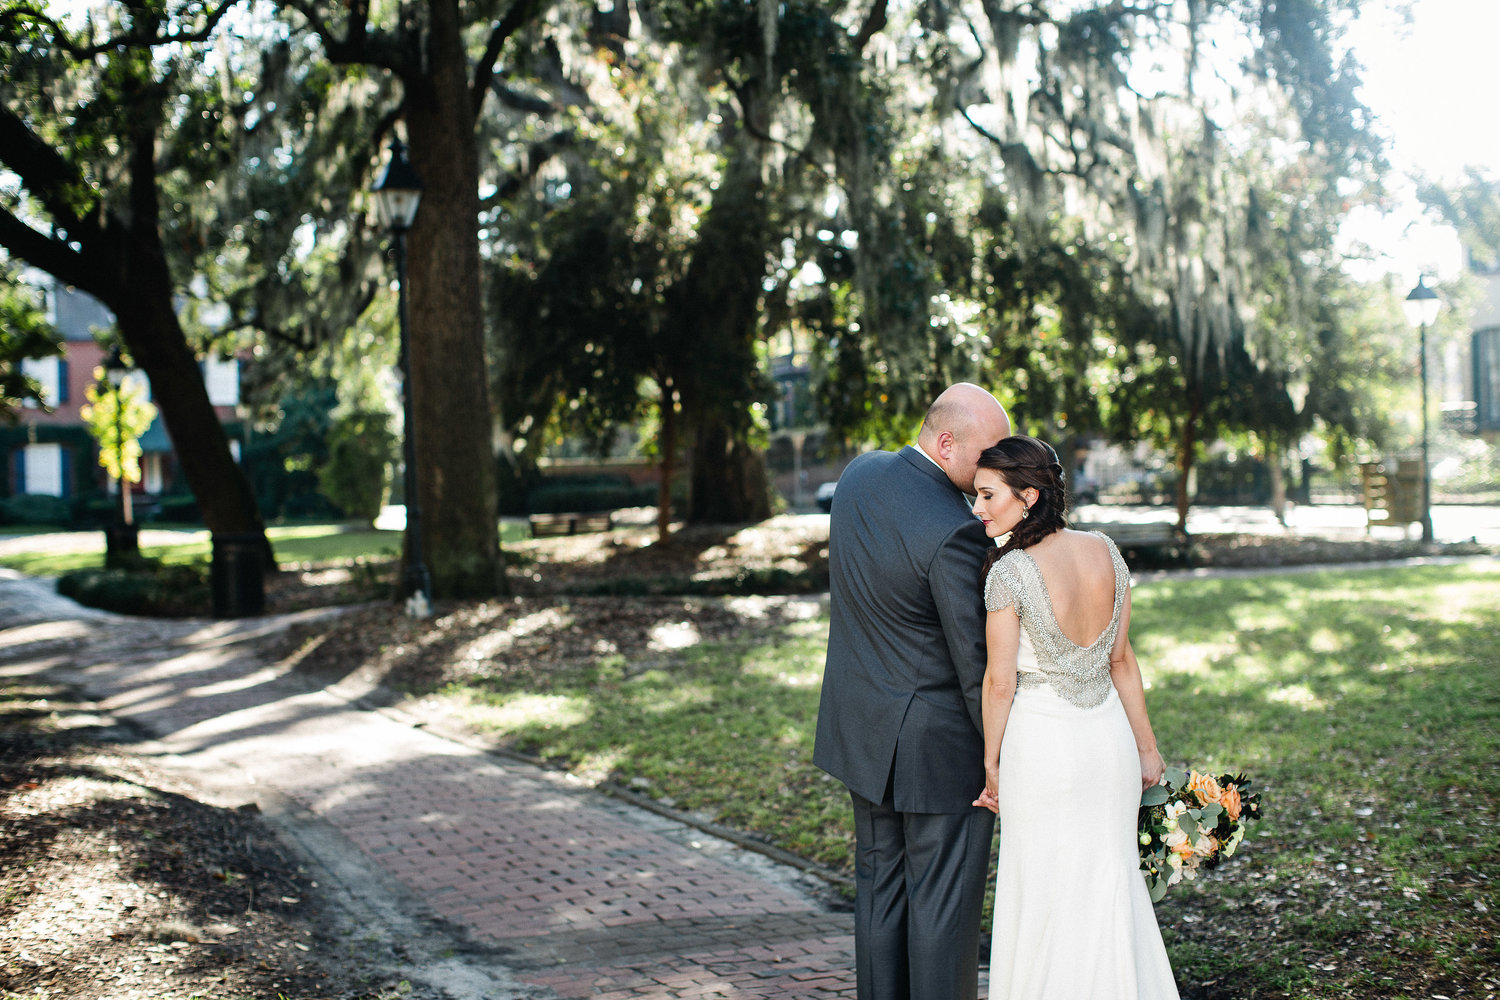 izzy-hudgins-photography-savannah-wedding-ivory-and-beau-bridal-boutique-savannah-wedding-planner-colonial-house-of-flowers-forsyth-park-wedding-old-fort-jackson-wedding-squidwed-films-savannah-boutique-savannah-weddings-17.jpg